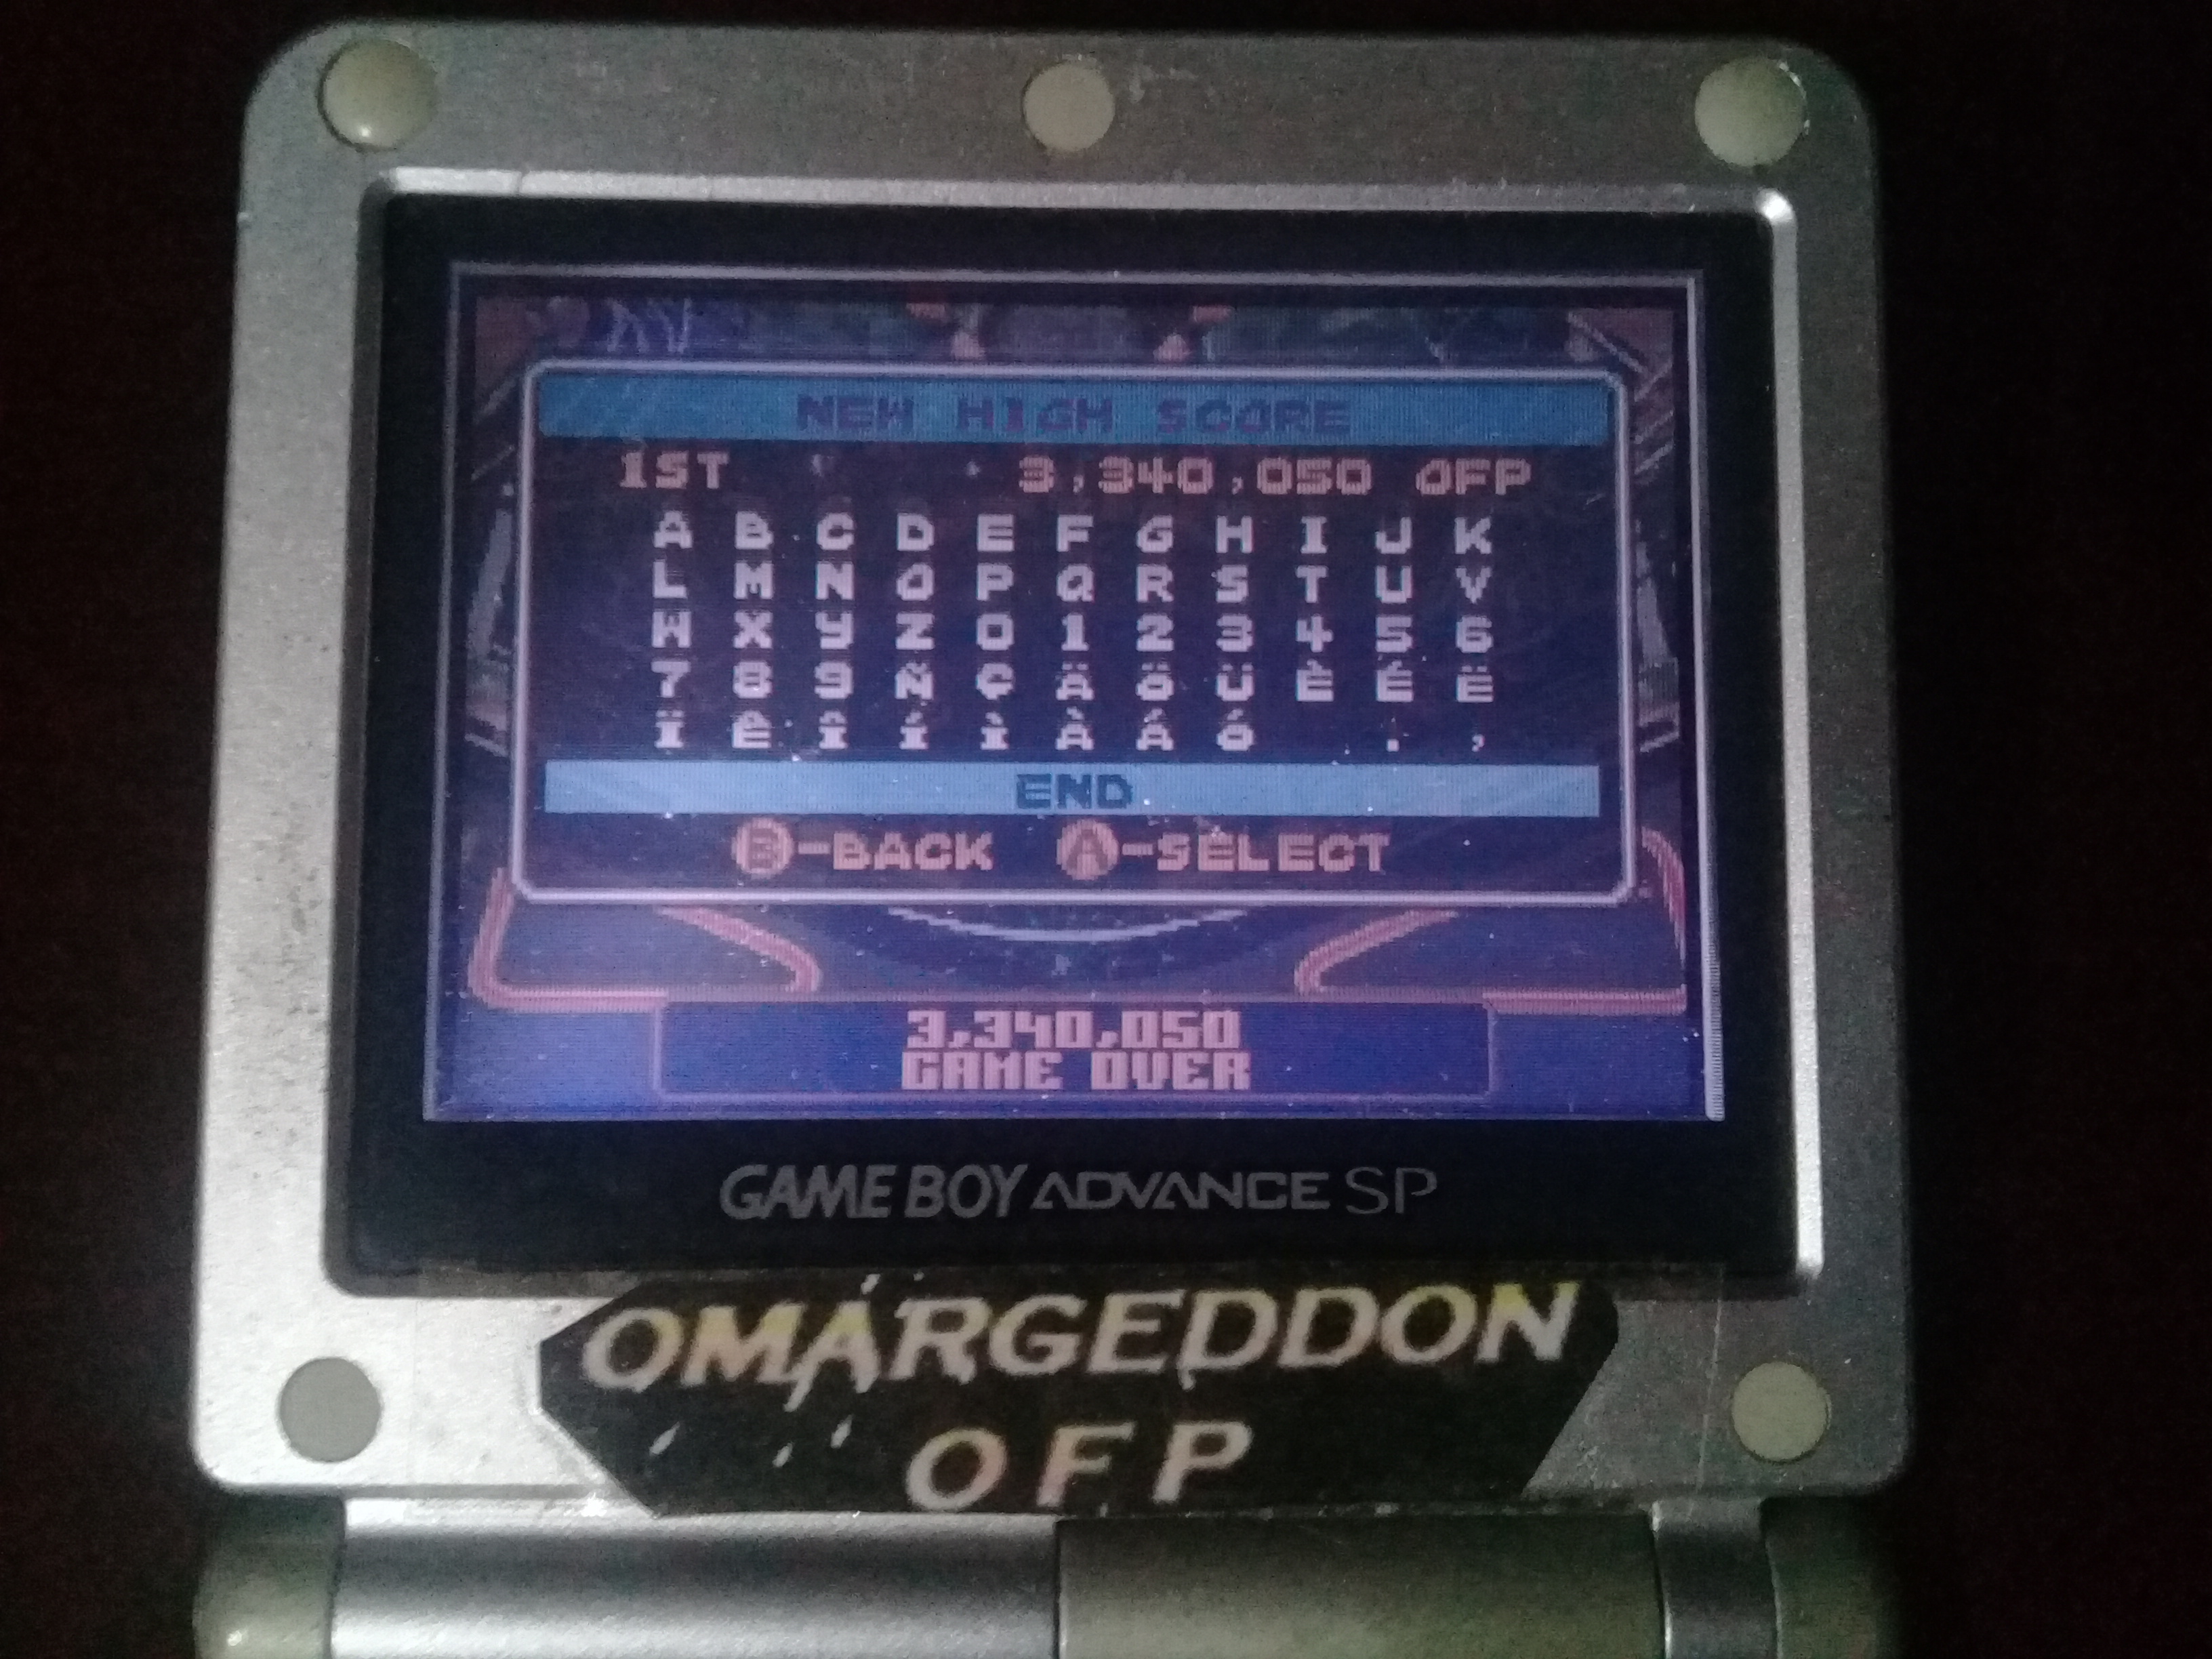 omargeddon: Pinball Advance: Tarantula [3 Balls] [Easy] (GBA) 3,340,050 points on 2019-10-20 01:08:22